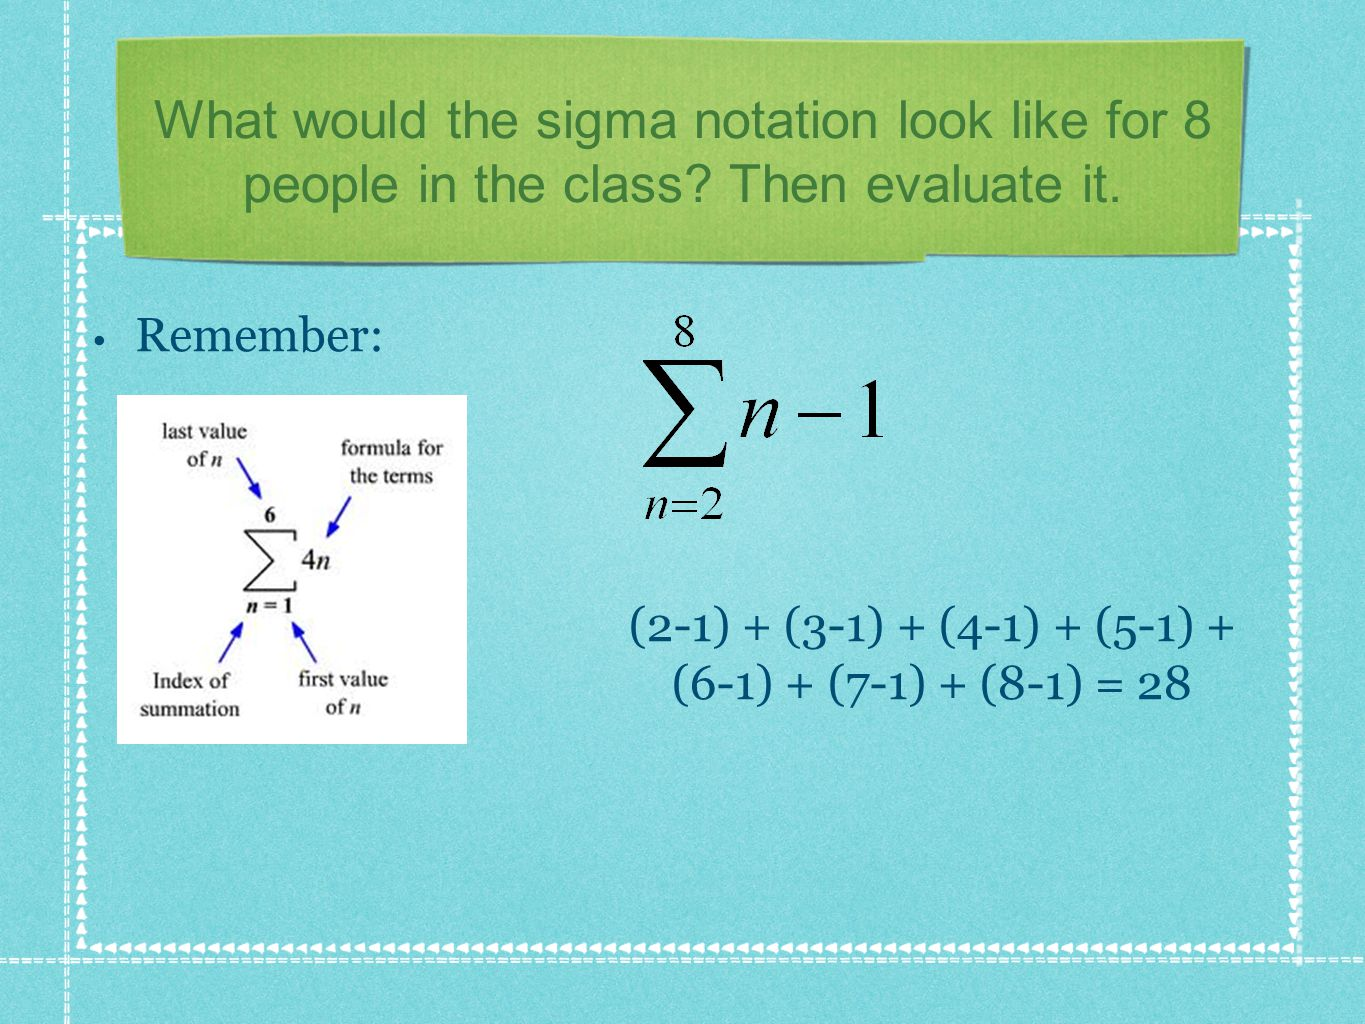 What would the sigma notation look like for 8 people in the class.